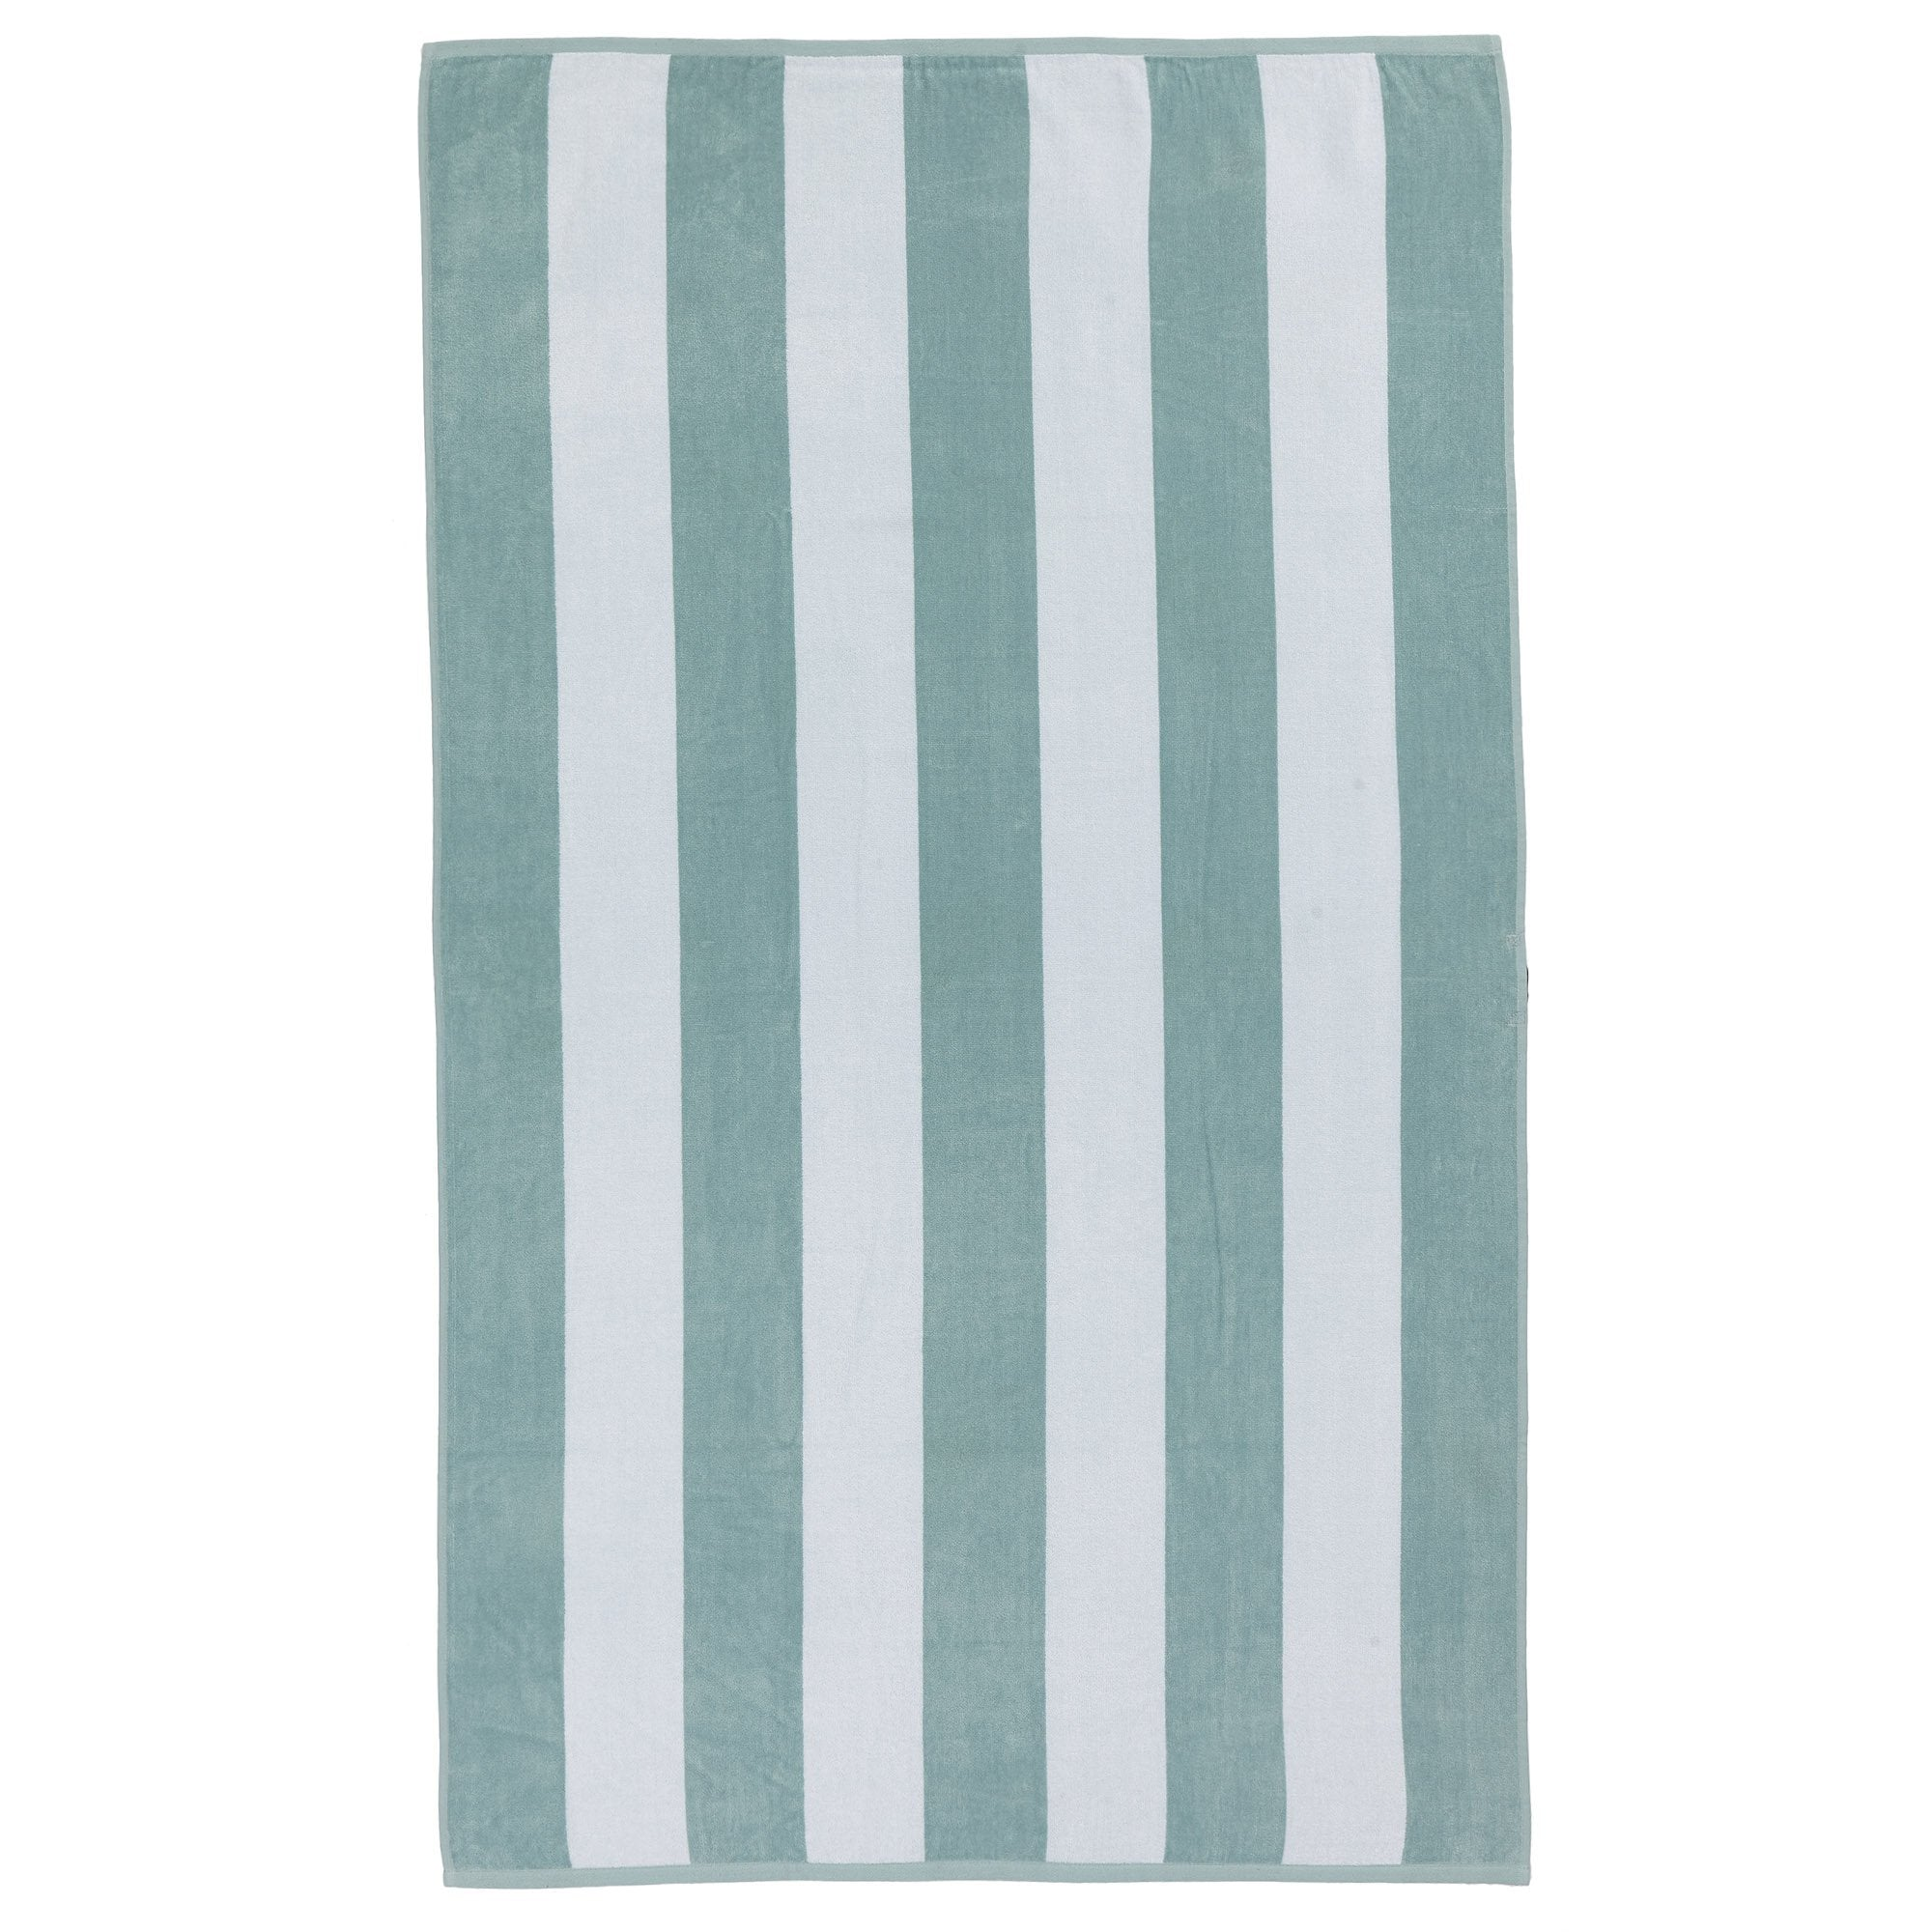 Serena beach towel, light grey green & white, 100% cotton